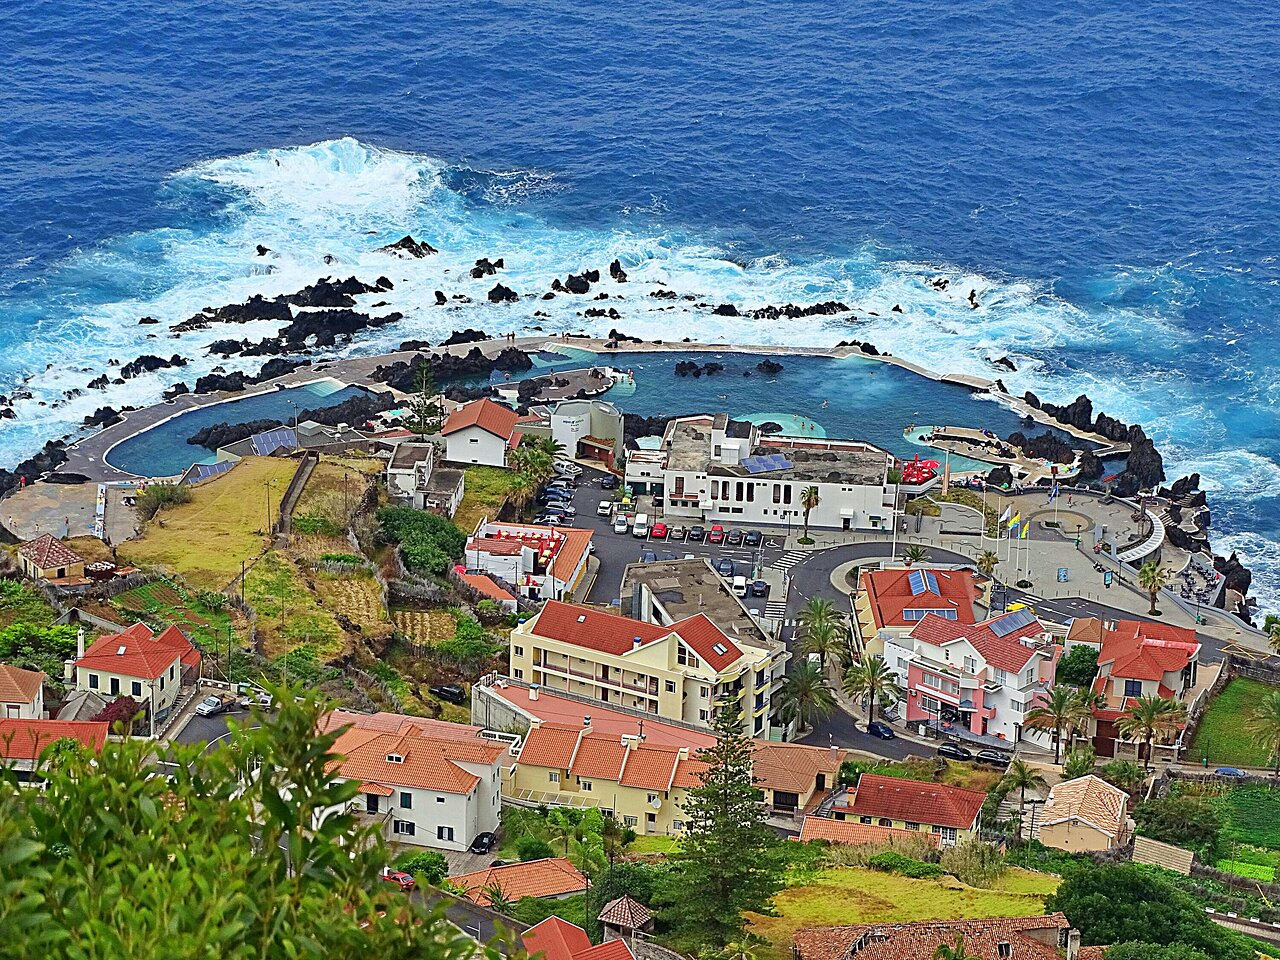 Porto Moniz Natural Swimming Pools 2020 All You Need To Know